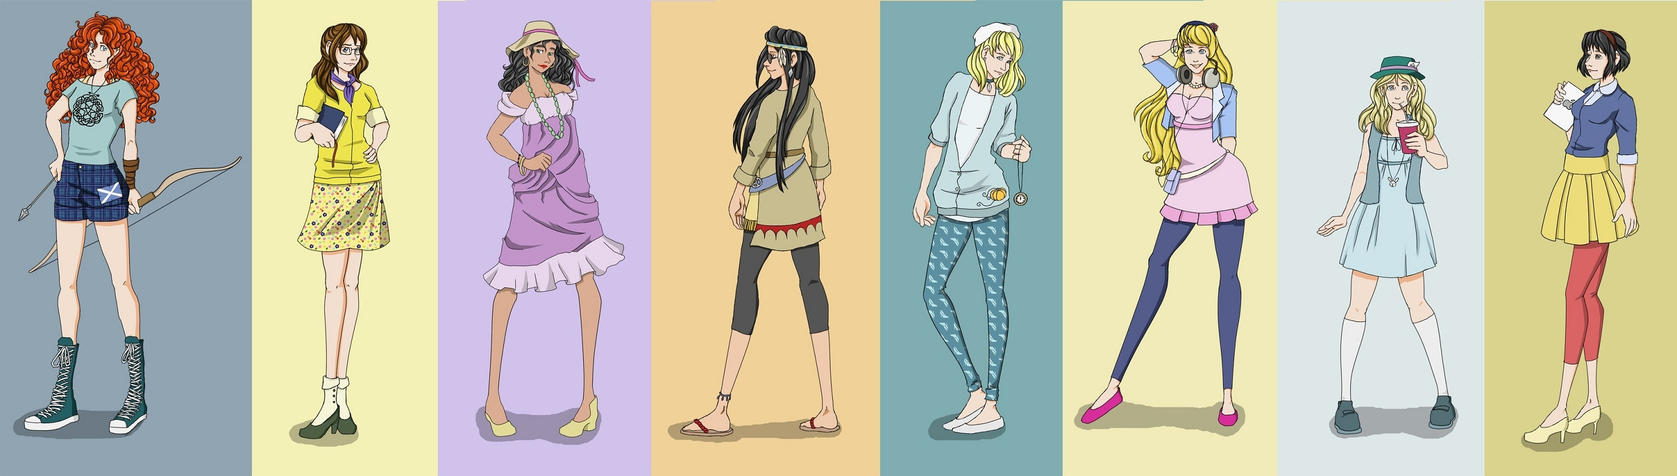 Hipster Disney Princesses II by mayanna